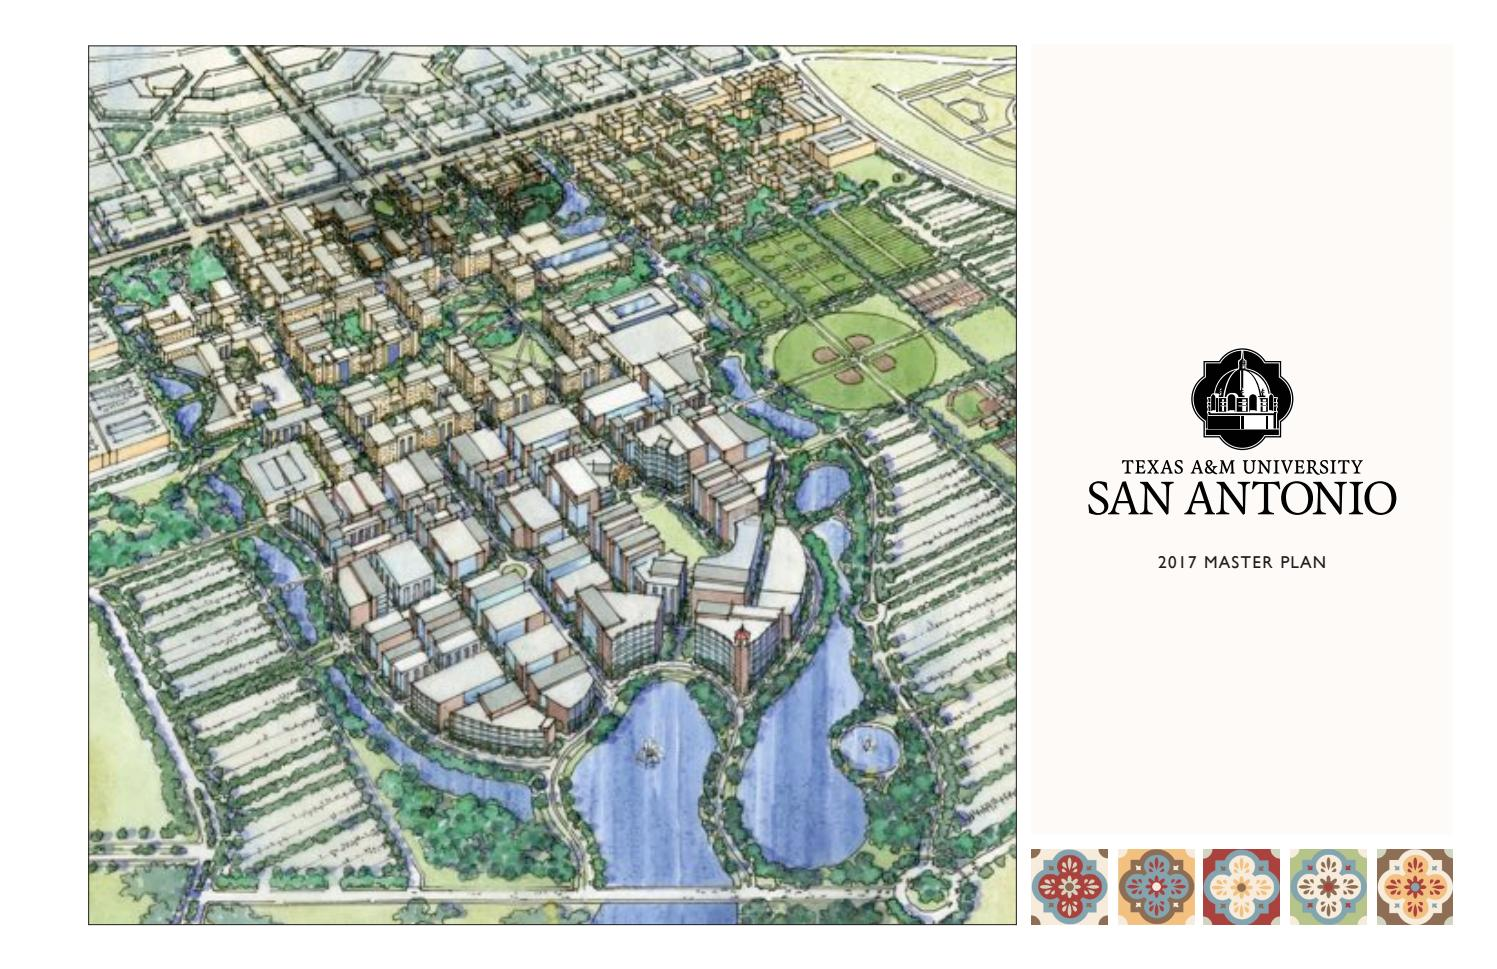 texas a&m university-san antonio master plan 2017 by texas a&m